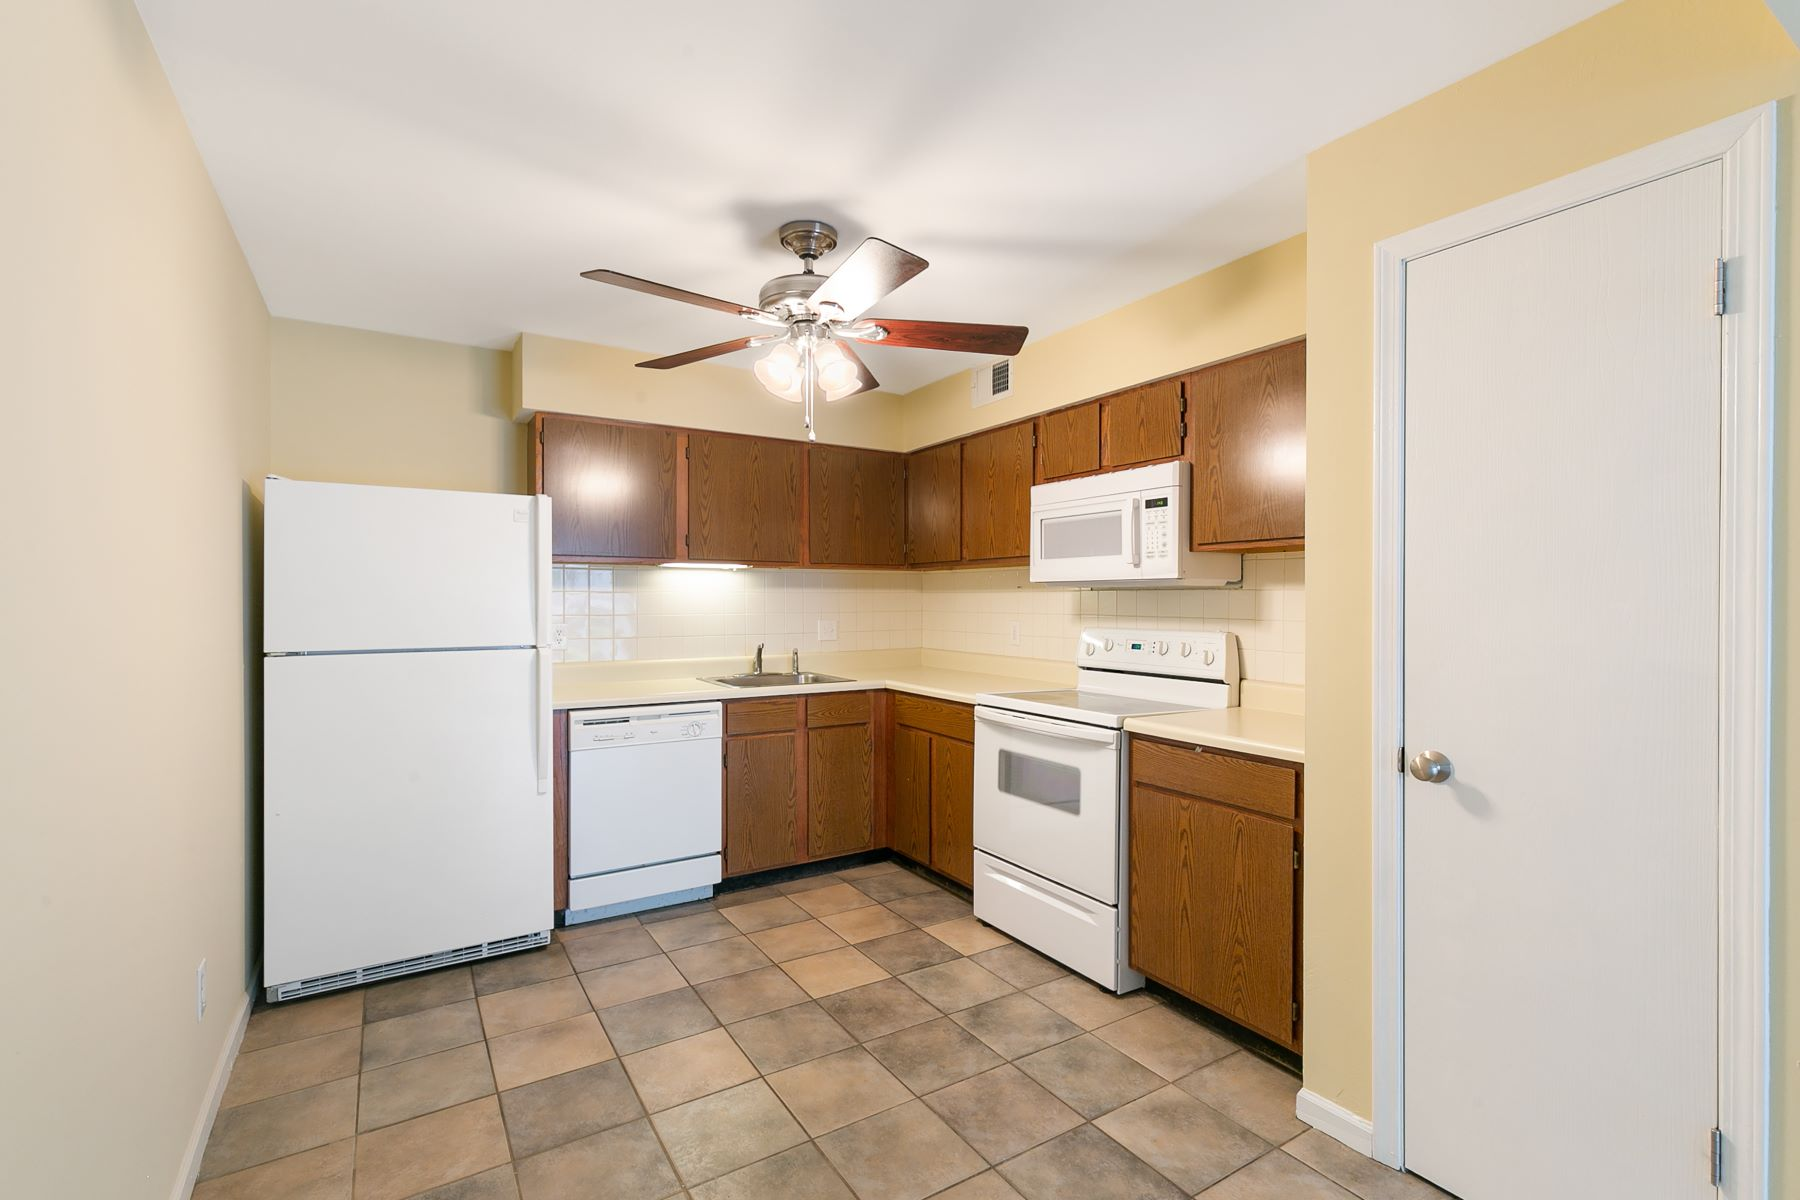 Additional photo for property listing at Fulfill Your Dream of Owning a Home 1210 Creve Coeur Crossing Lane Unit H Chesterfield, Missouri 63017 United States